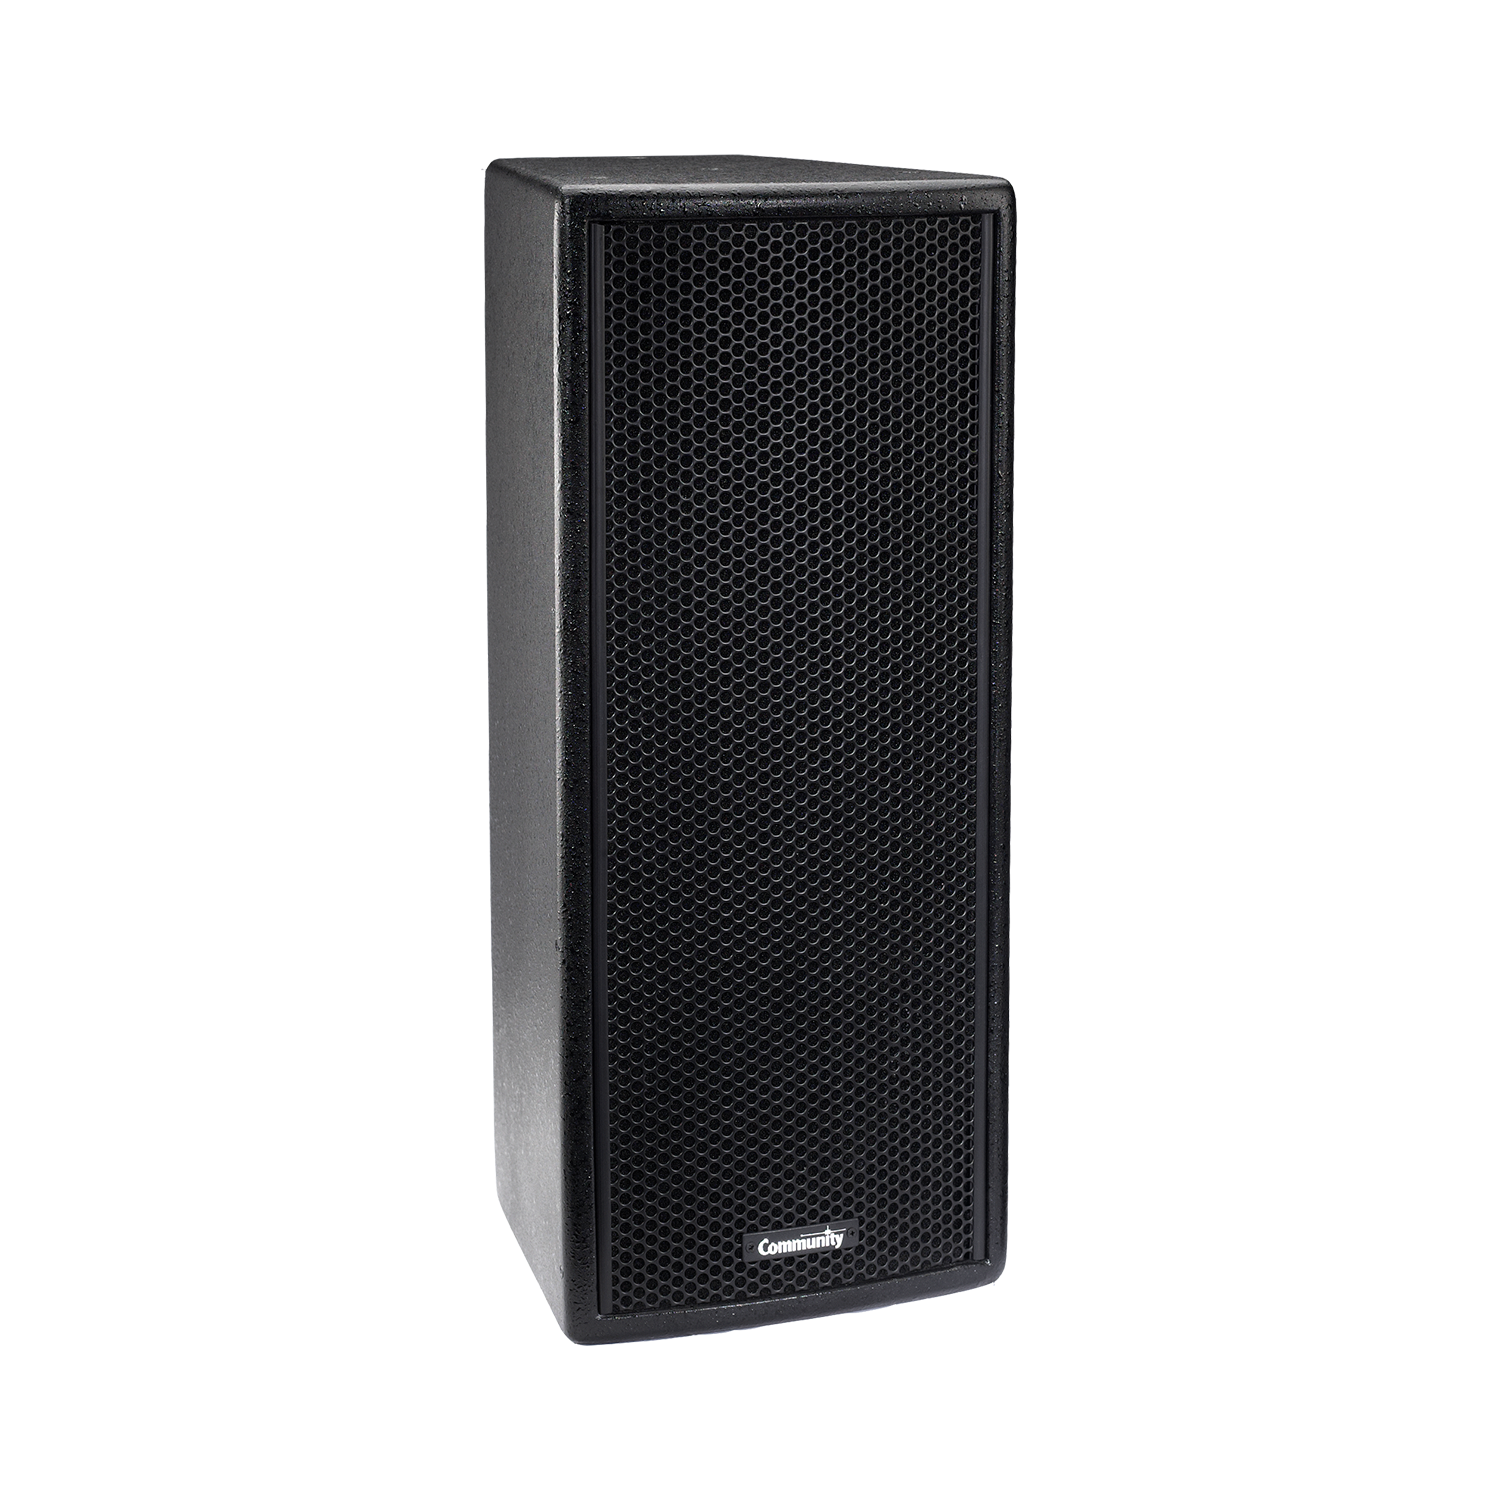 V2-26 Compact Point Source Loudspeaker Dual 6-inch Compact Full-Range Two-Way